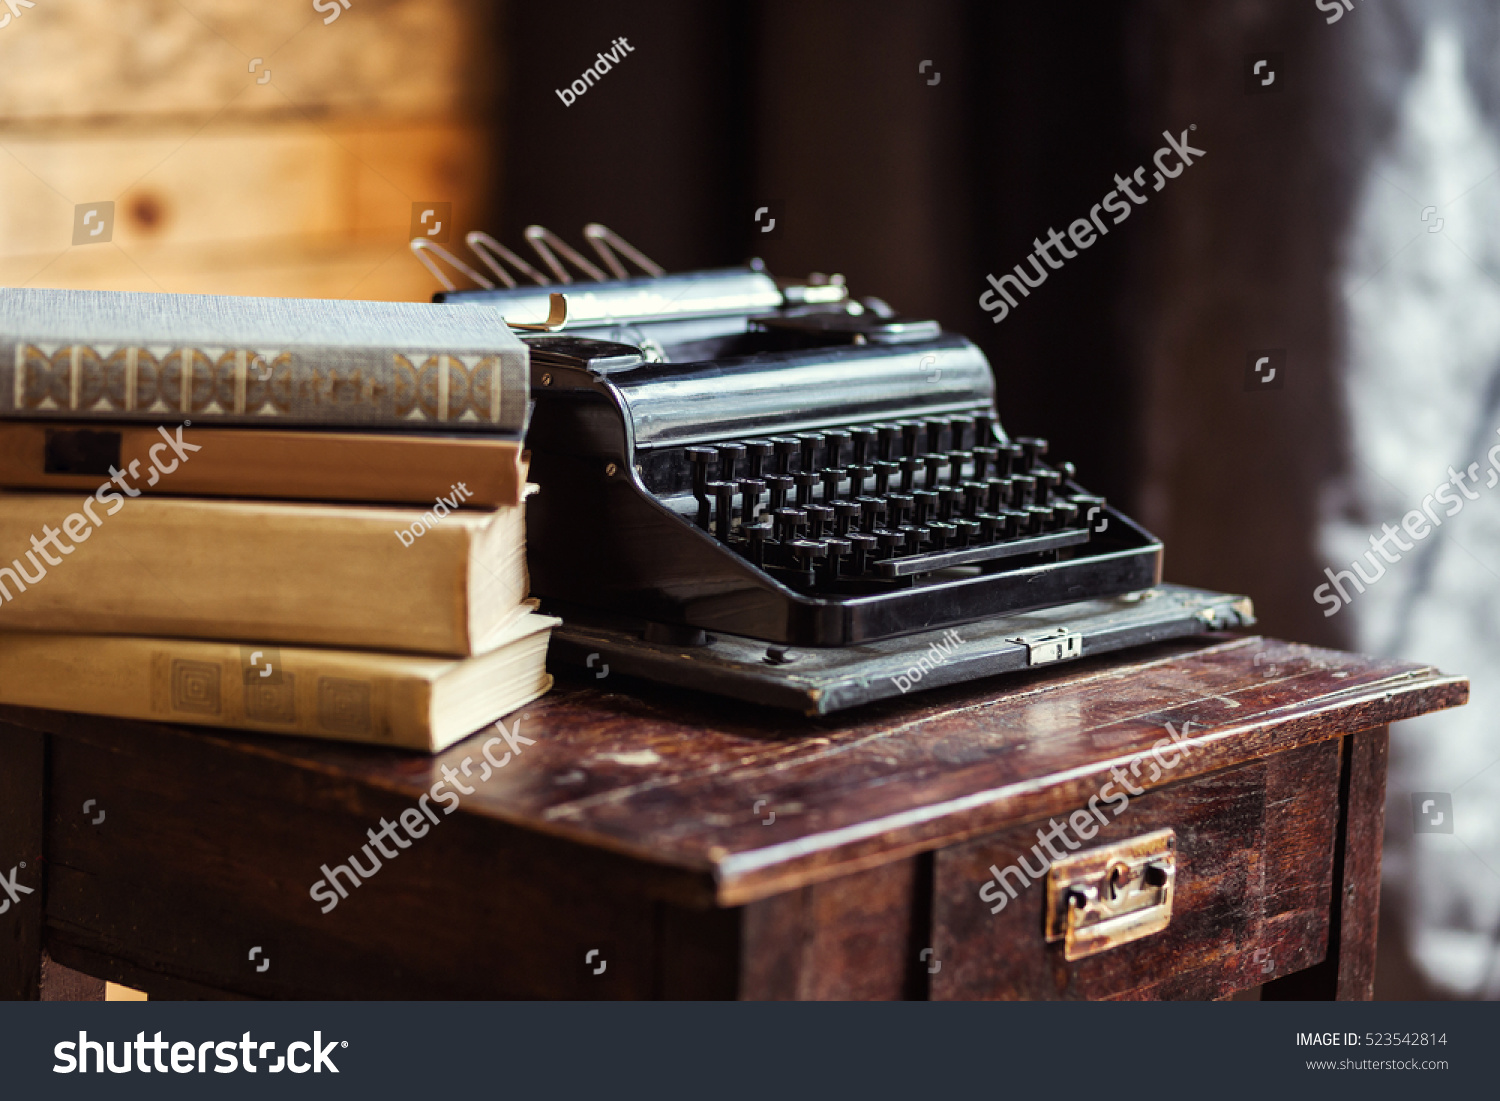 typewriter and books on the table, vintage typewriter and old books,  vintage,writer - Typewriter Books On Table Vintage Typewriter Stock Photo 523542814